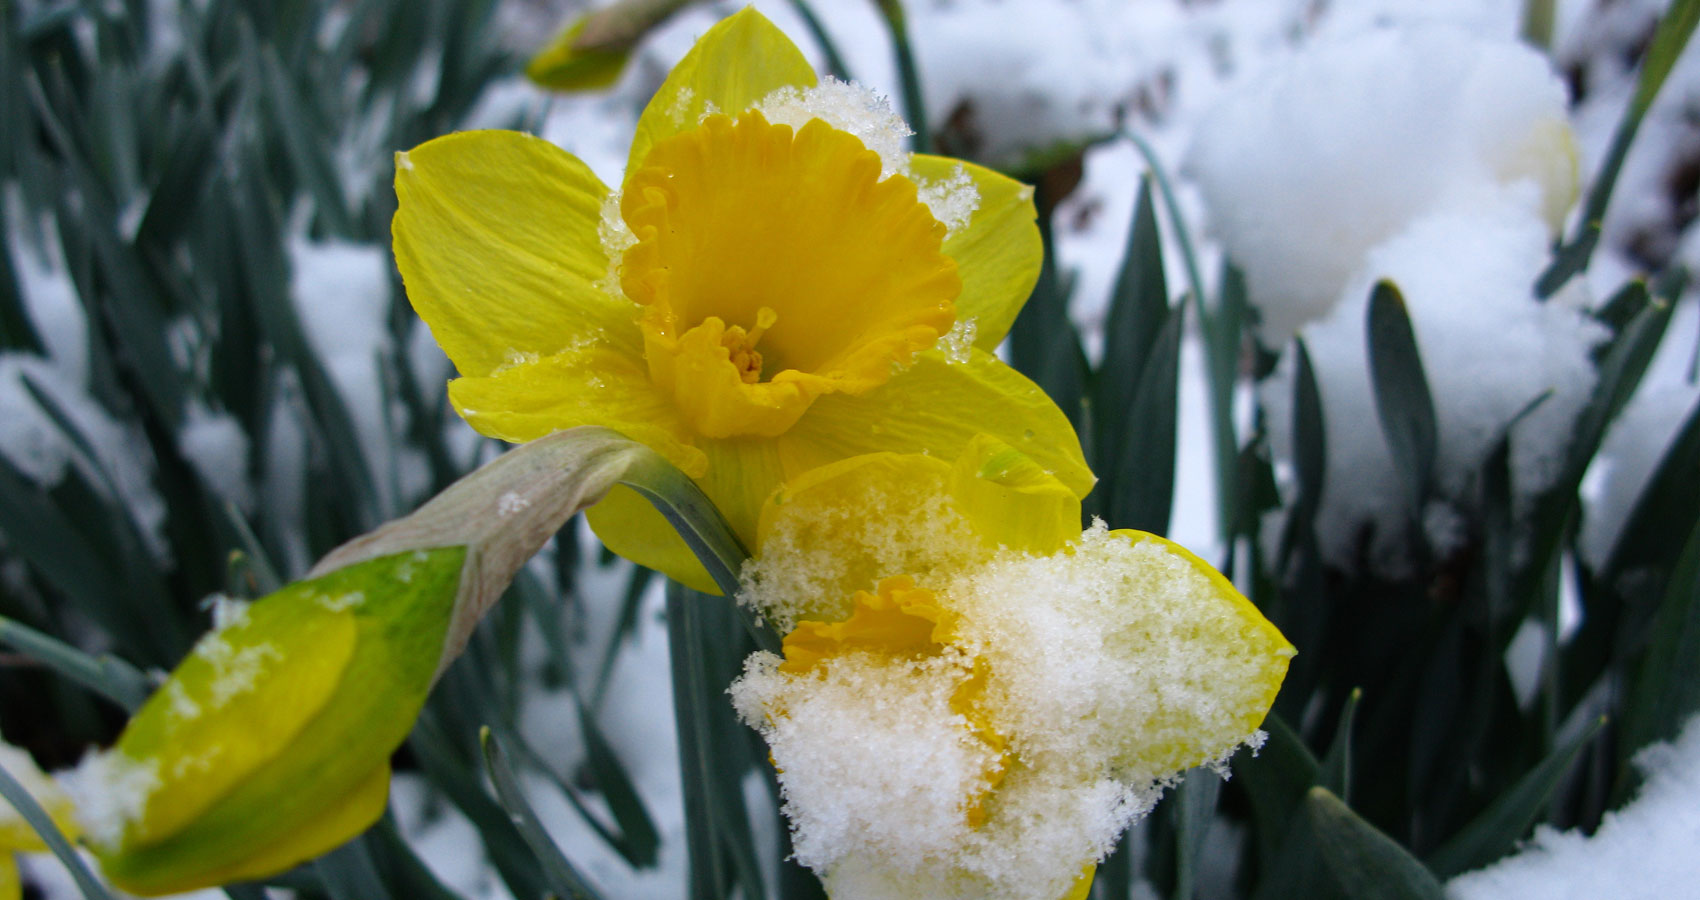 Daffodil on Waking written by Joyce Butler at Spillwords.com